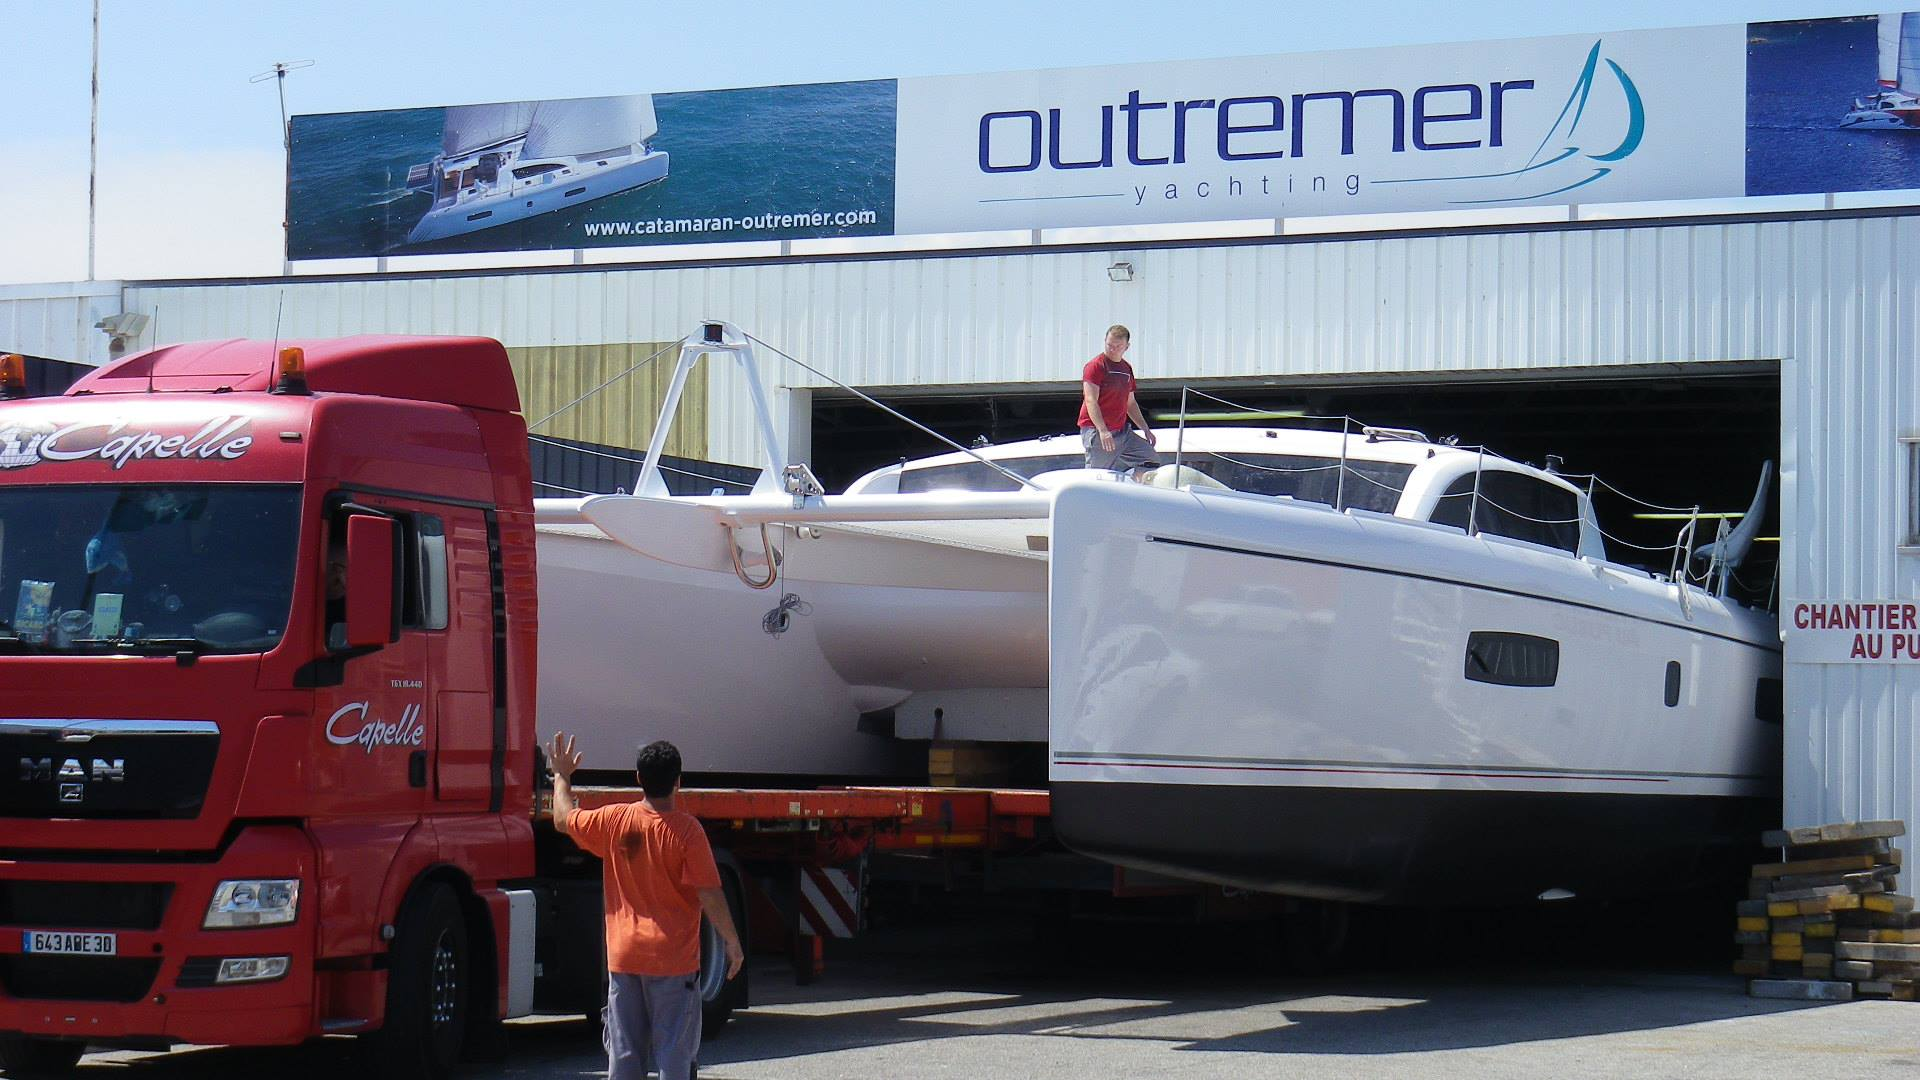 outremer-51-05